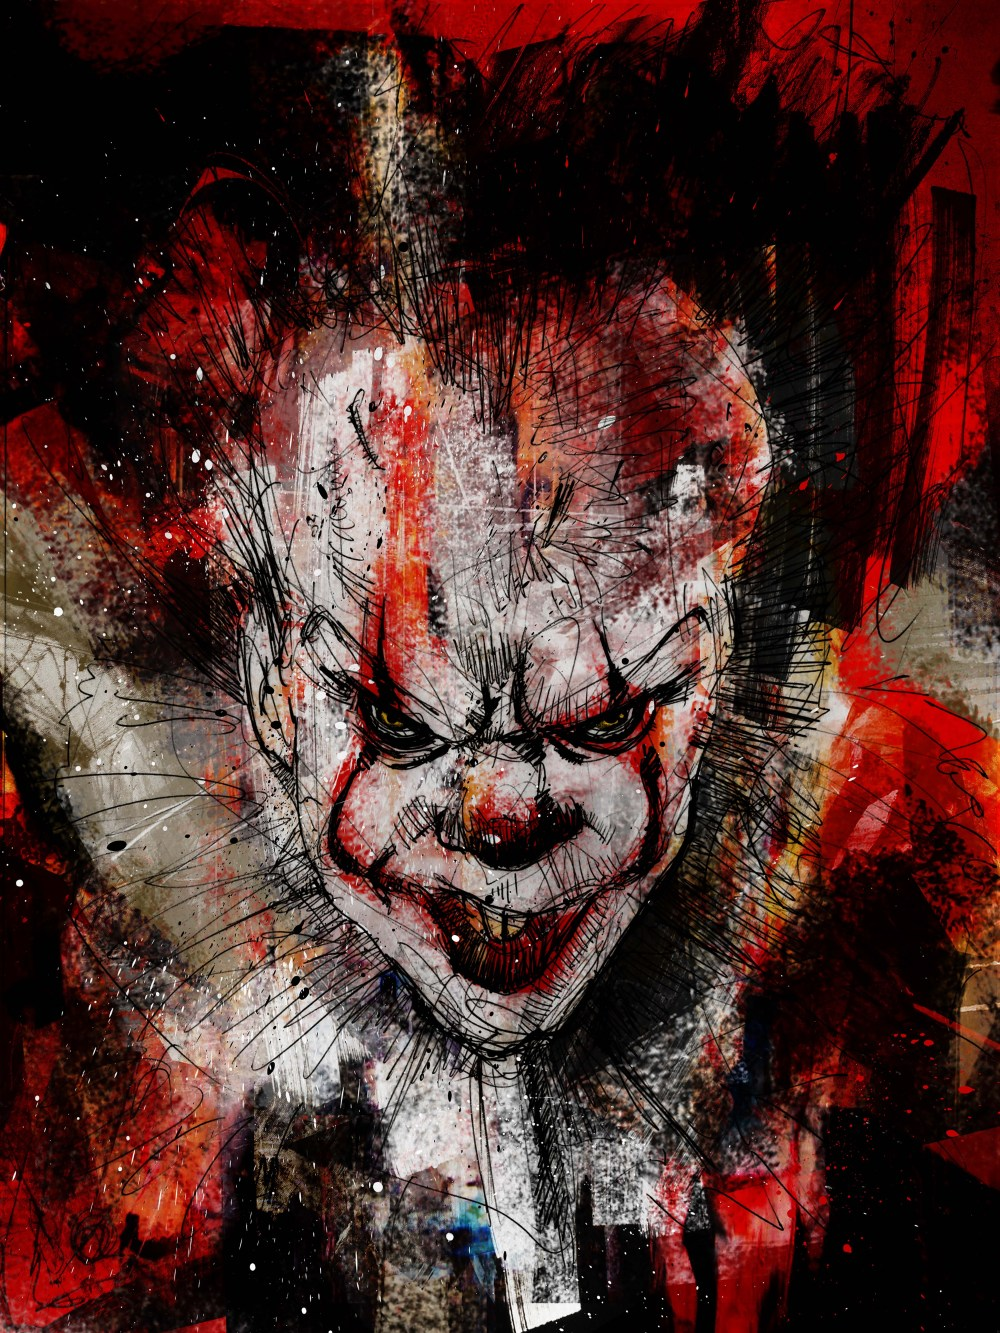 this awesome pennywise art is on display at gallery1988